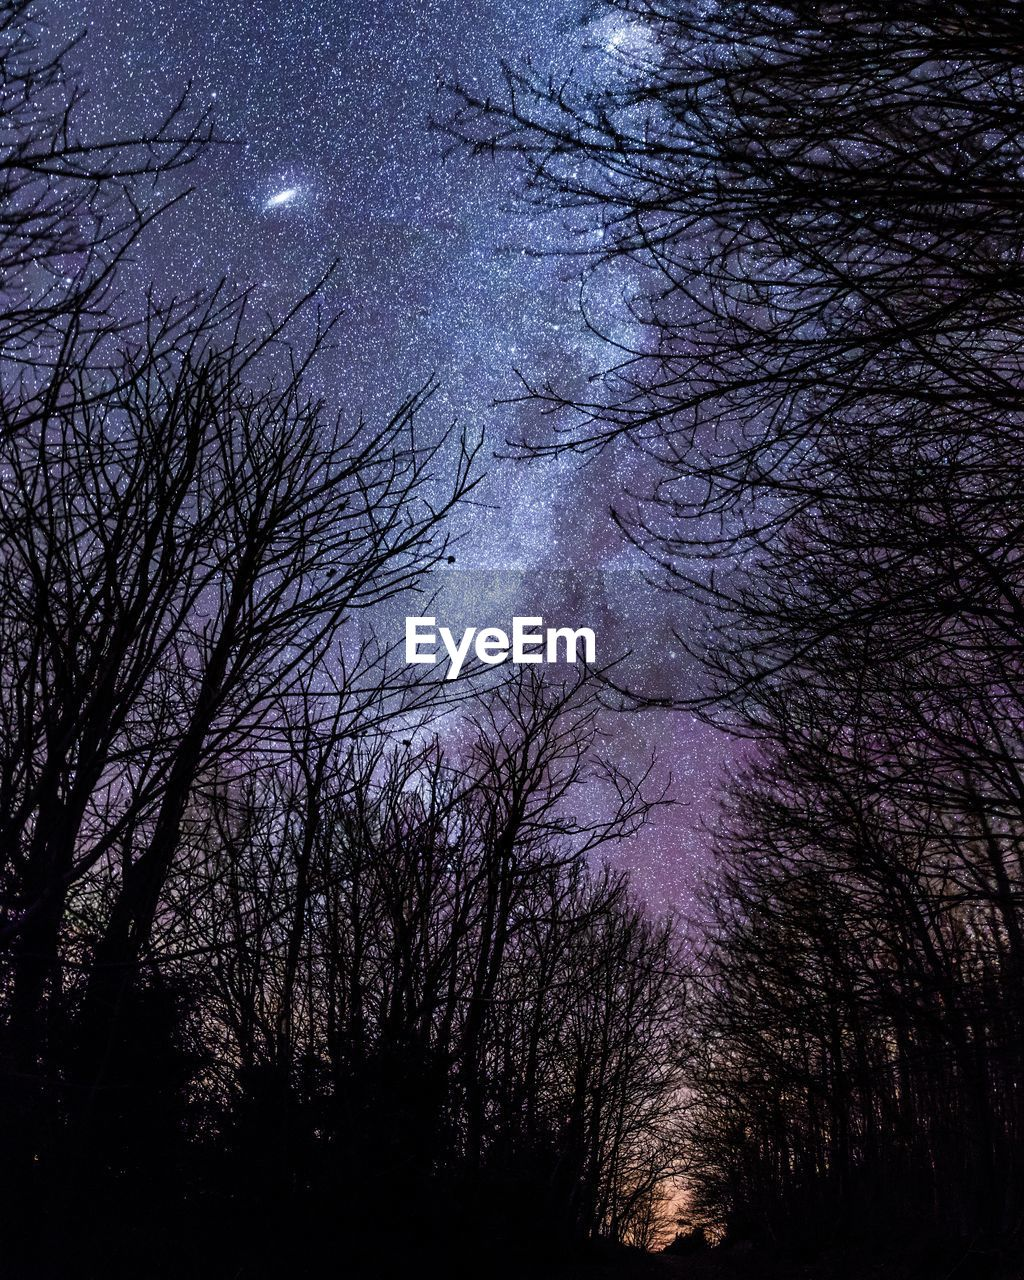 Bare trees against star field